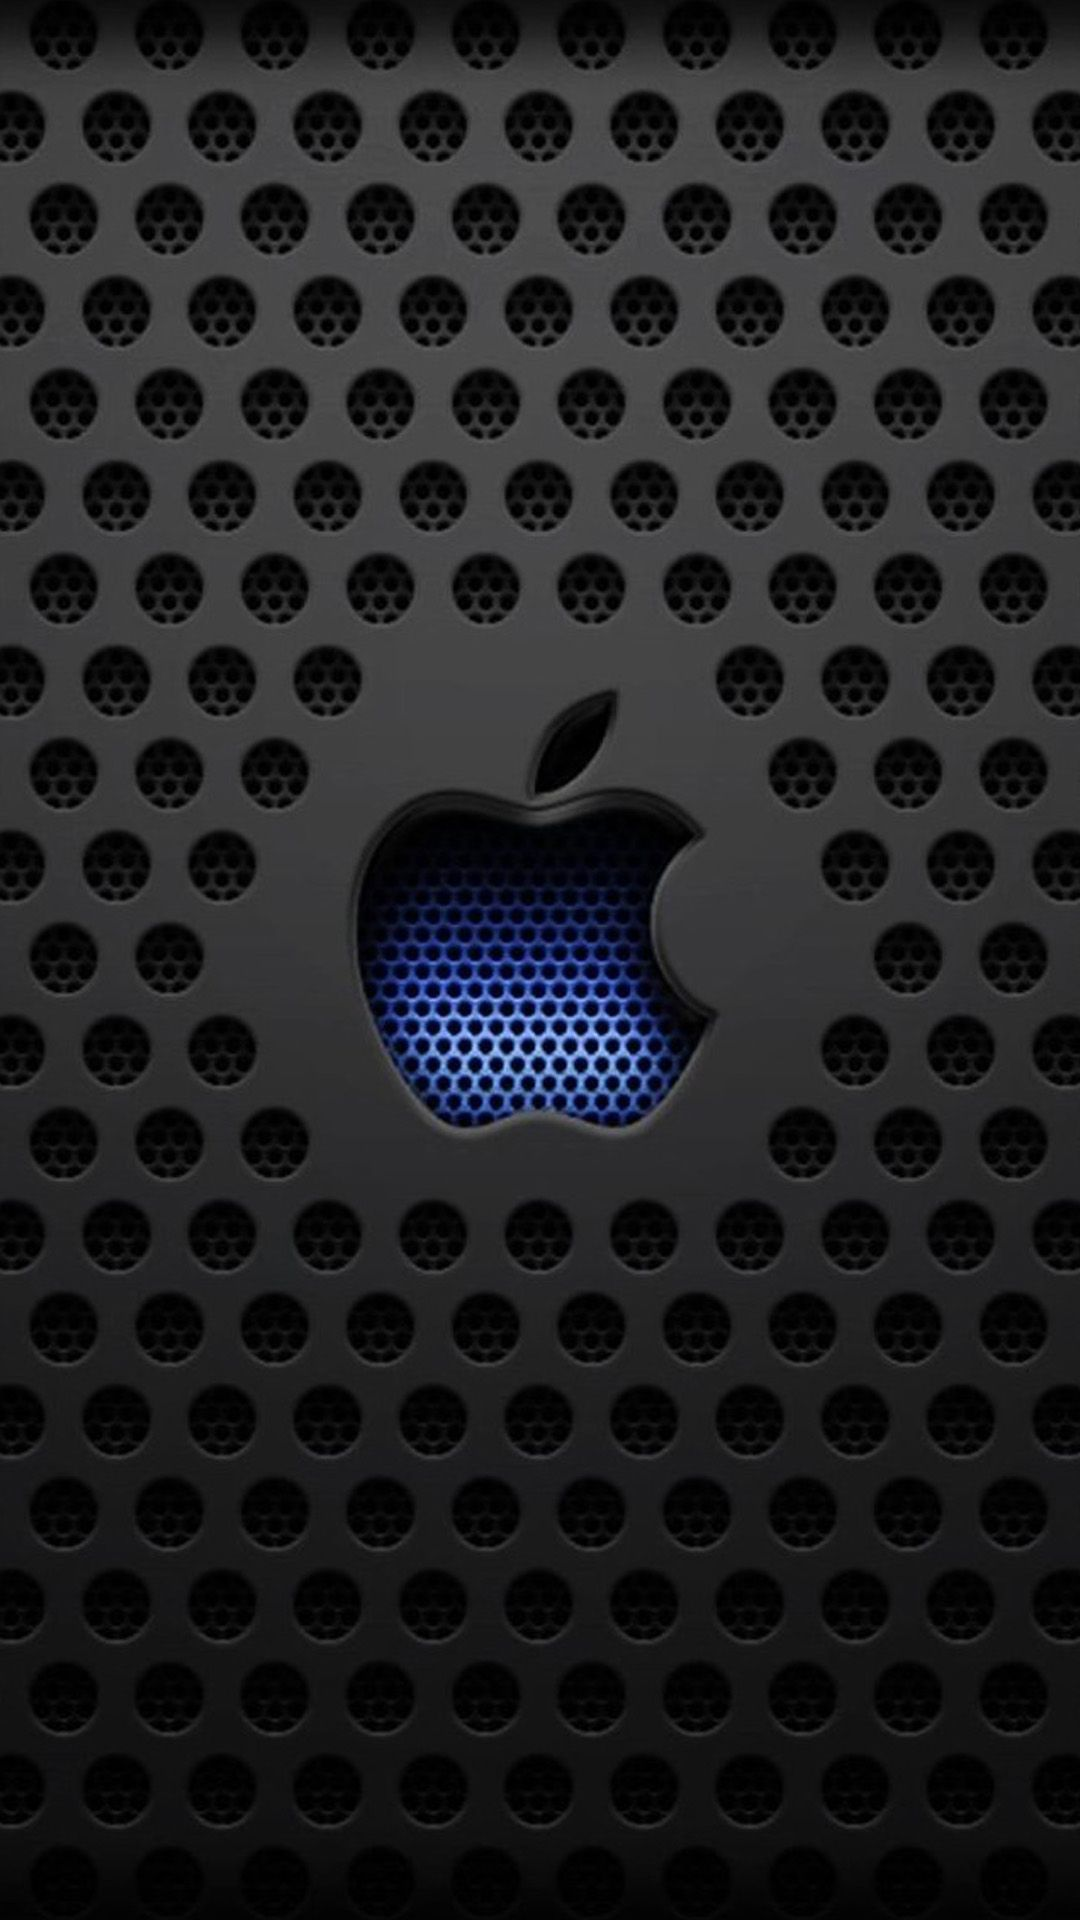 Apple 6 Plus Wallpapers in 2020 Apple logo wallpaper